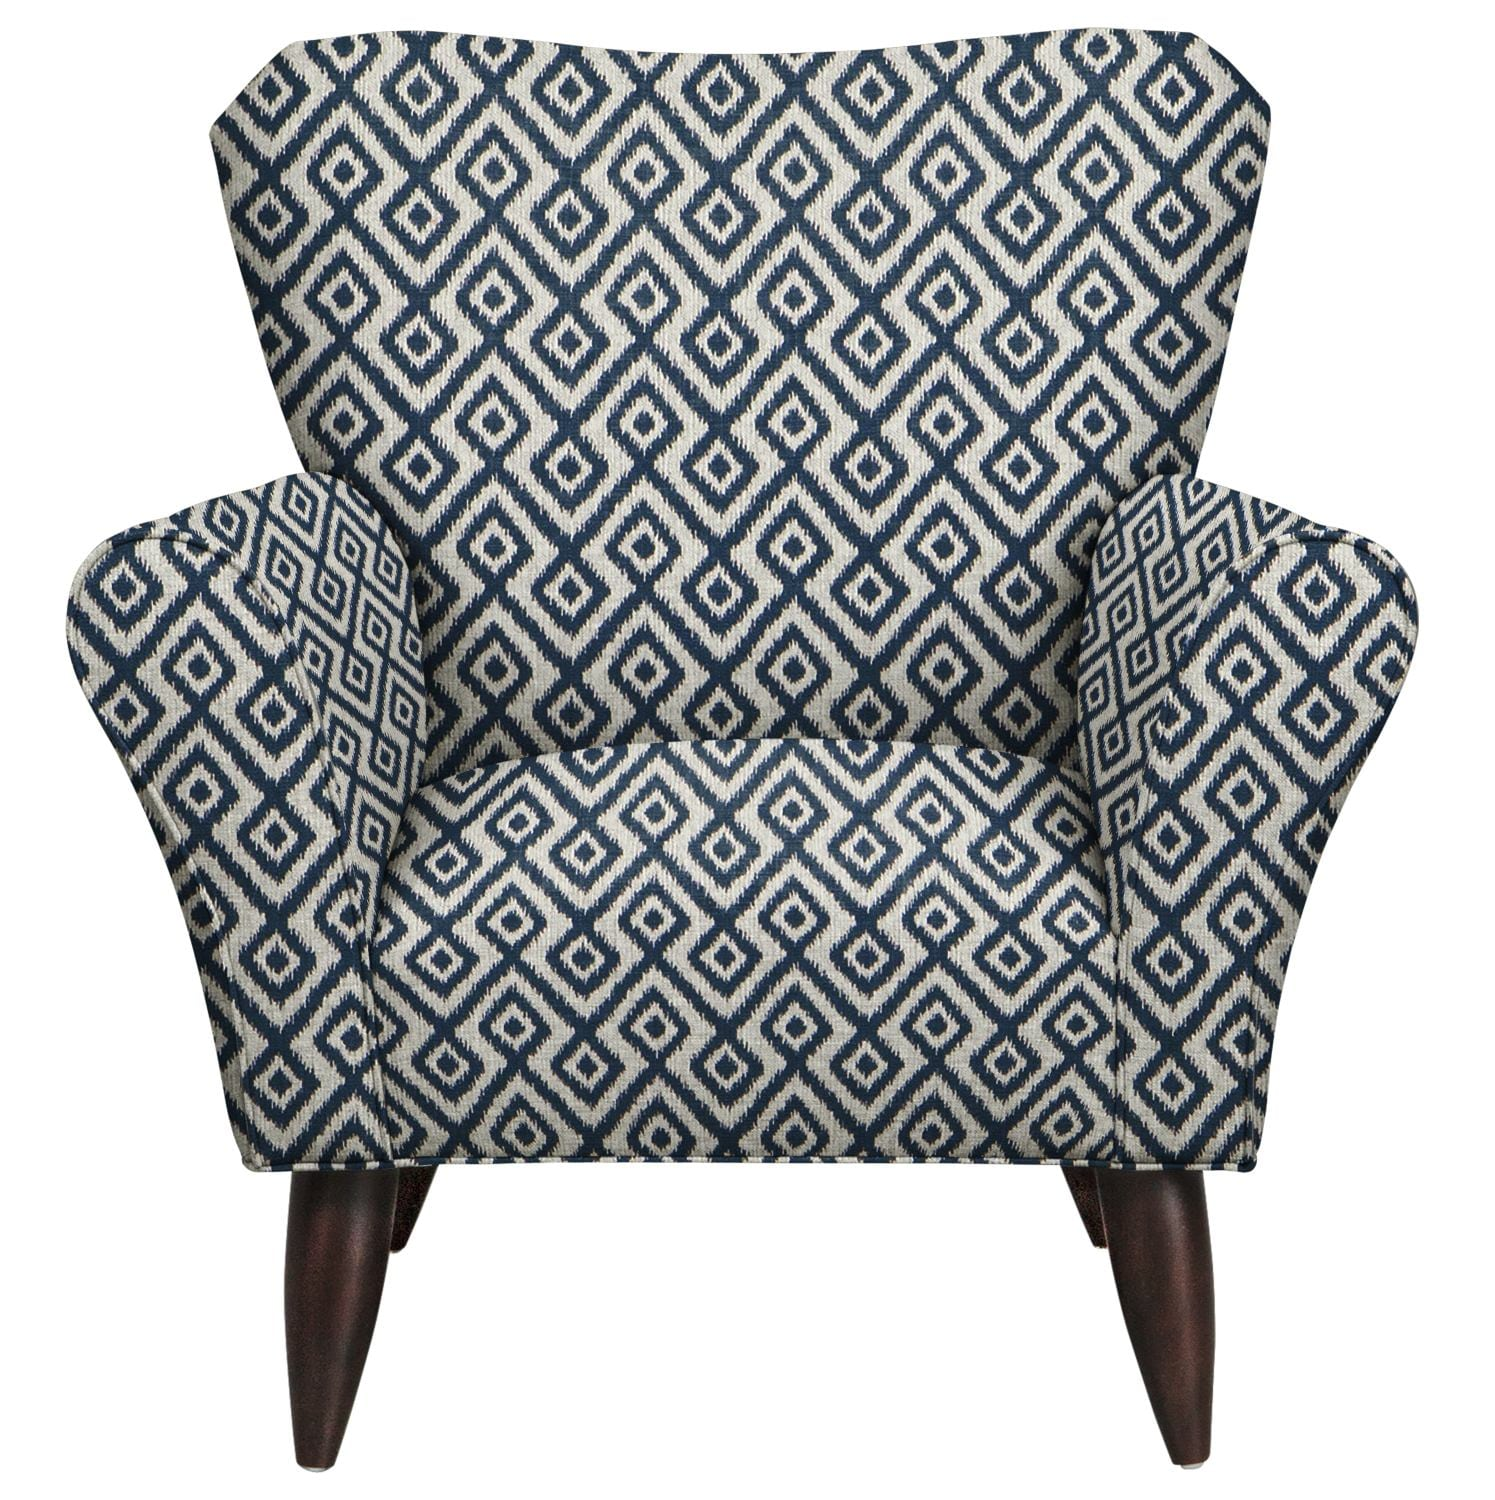 Living Room Furniture - Jessie Chair w/ Tate Indigo Fabric